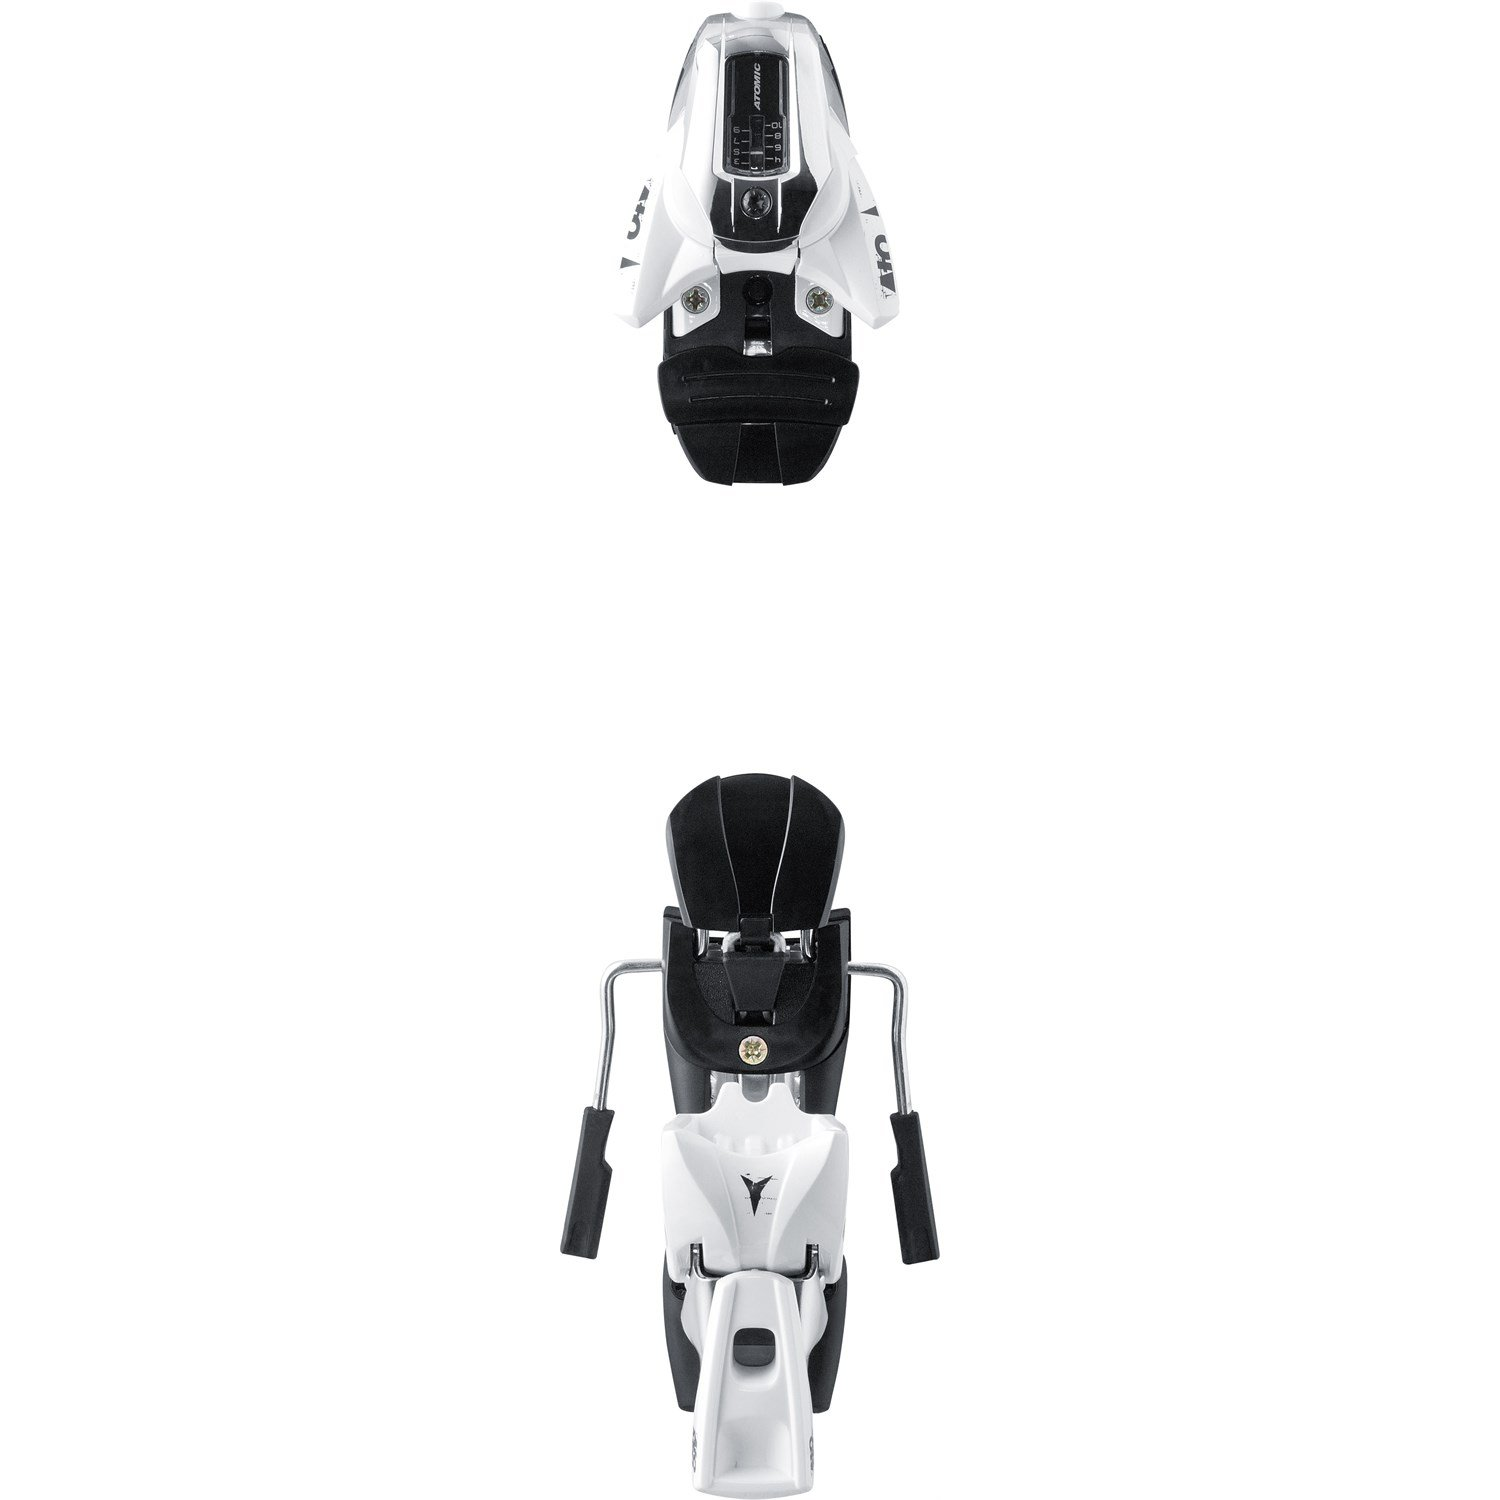 Atomic FFG 10 Ski Bindings (100mm Brakes) 2013 | evo outlet